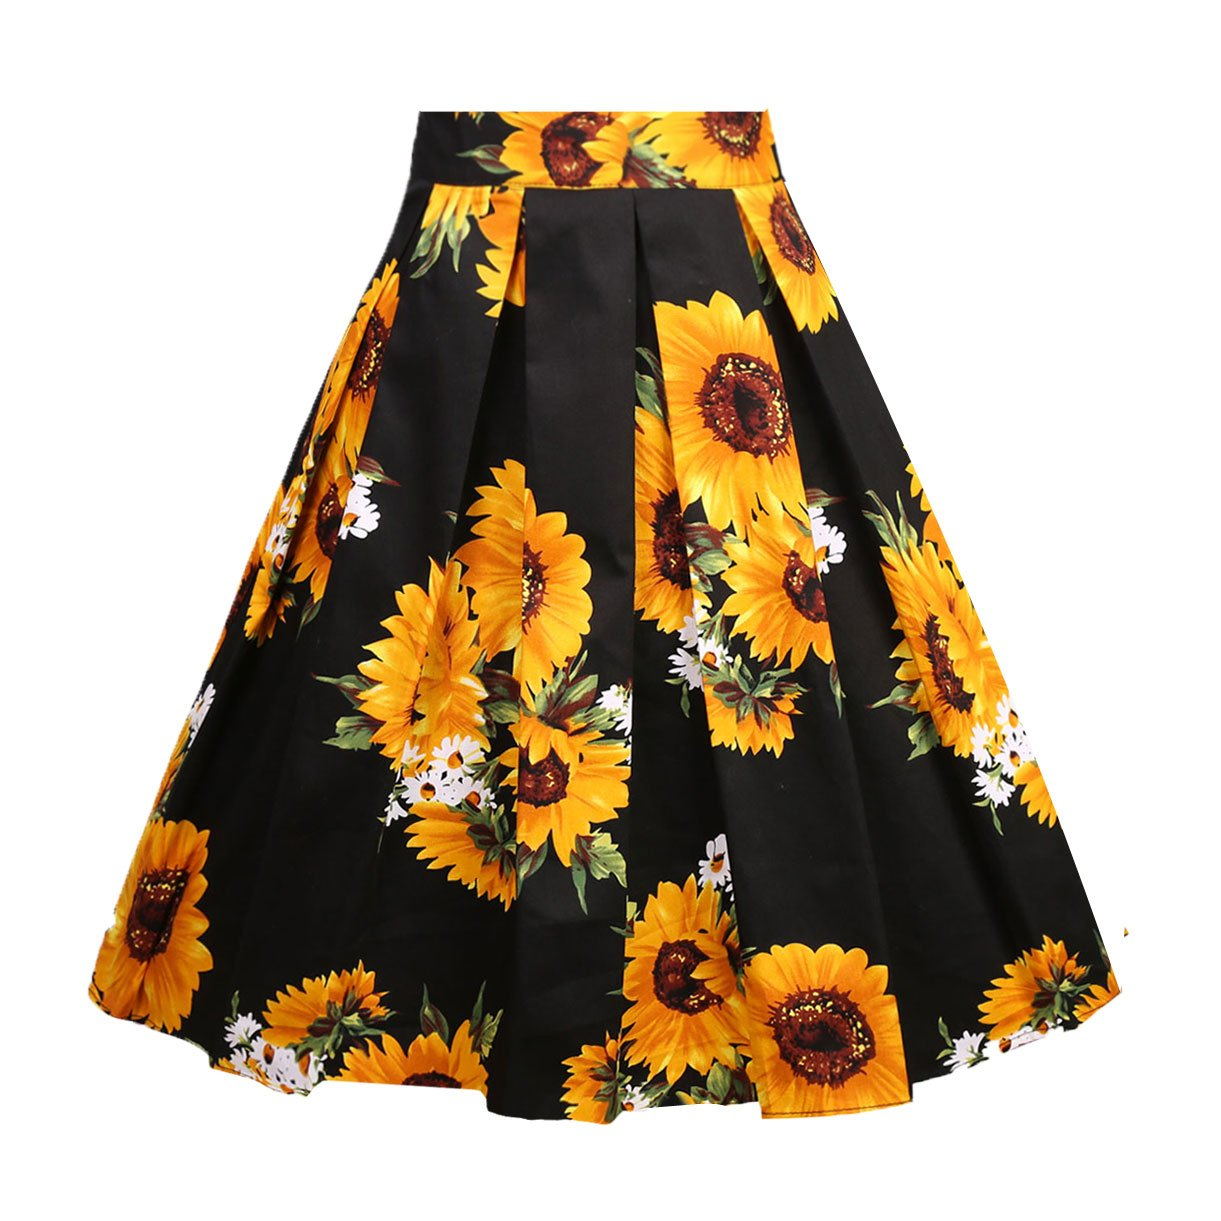 Girstunm Women's Pleated Vintage Skirt Floral Print A-Line Midi Skirts with Pockets Sun-Flowers L